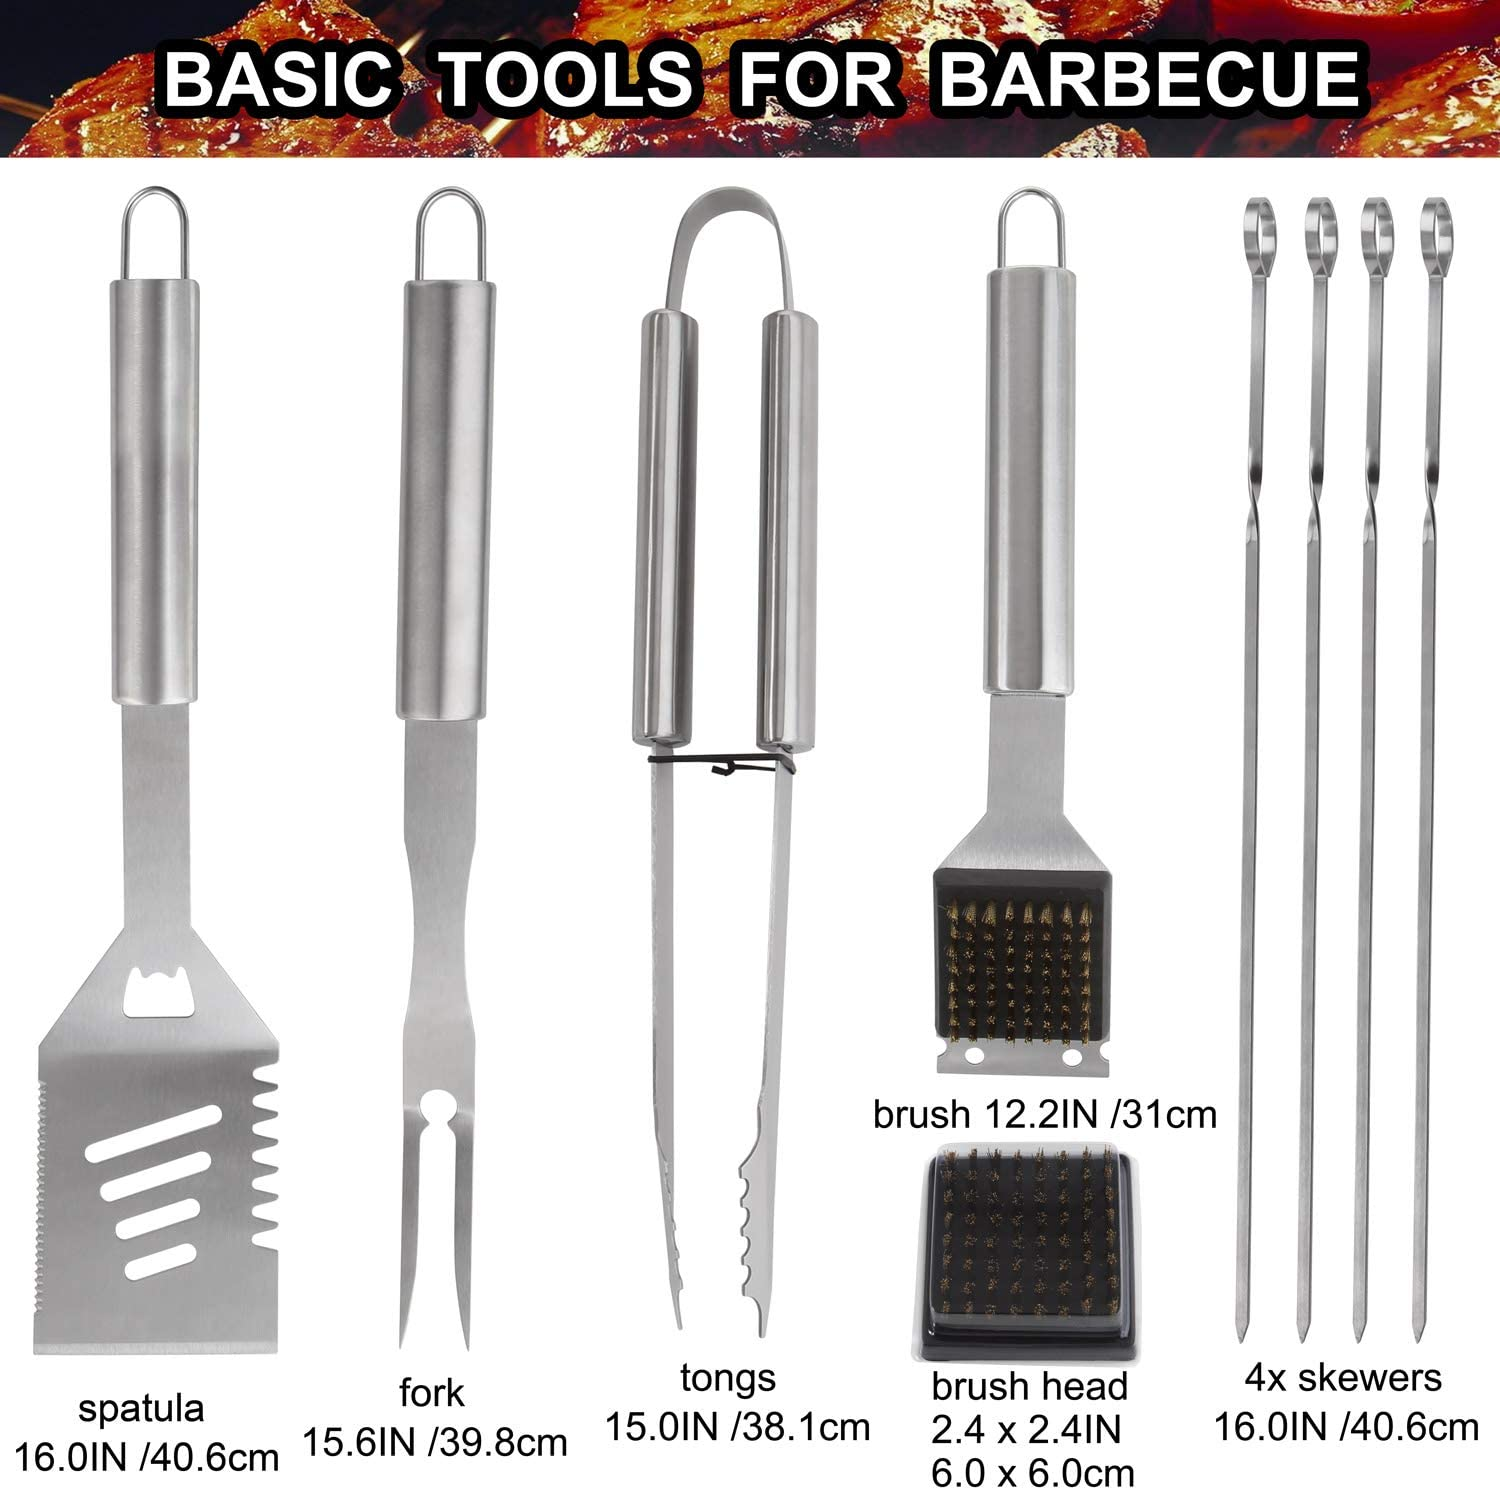 Grilljoy 29PCS BBQ Grilling Tools Set – Heavy Duty Stainless Steel Grilling Accessories with Barbecue Storage Case for Travel Camping Kitchen. Perfect BBQ Grill Utensil Gifts for Men Women on Birthday